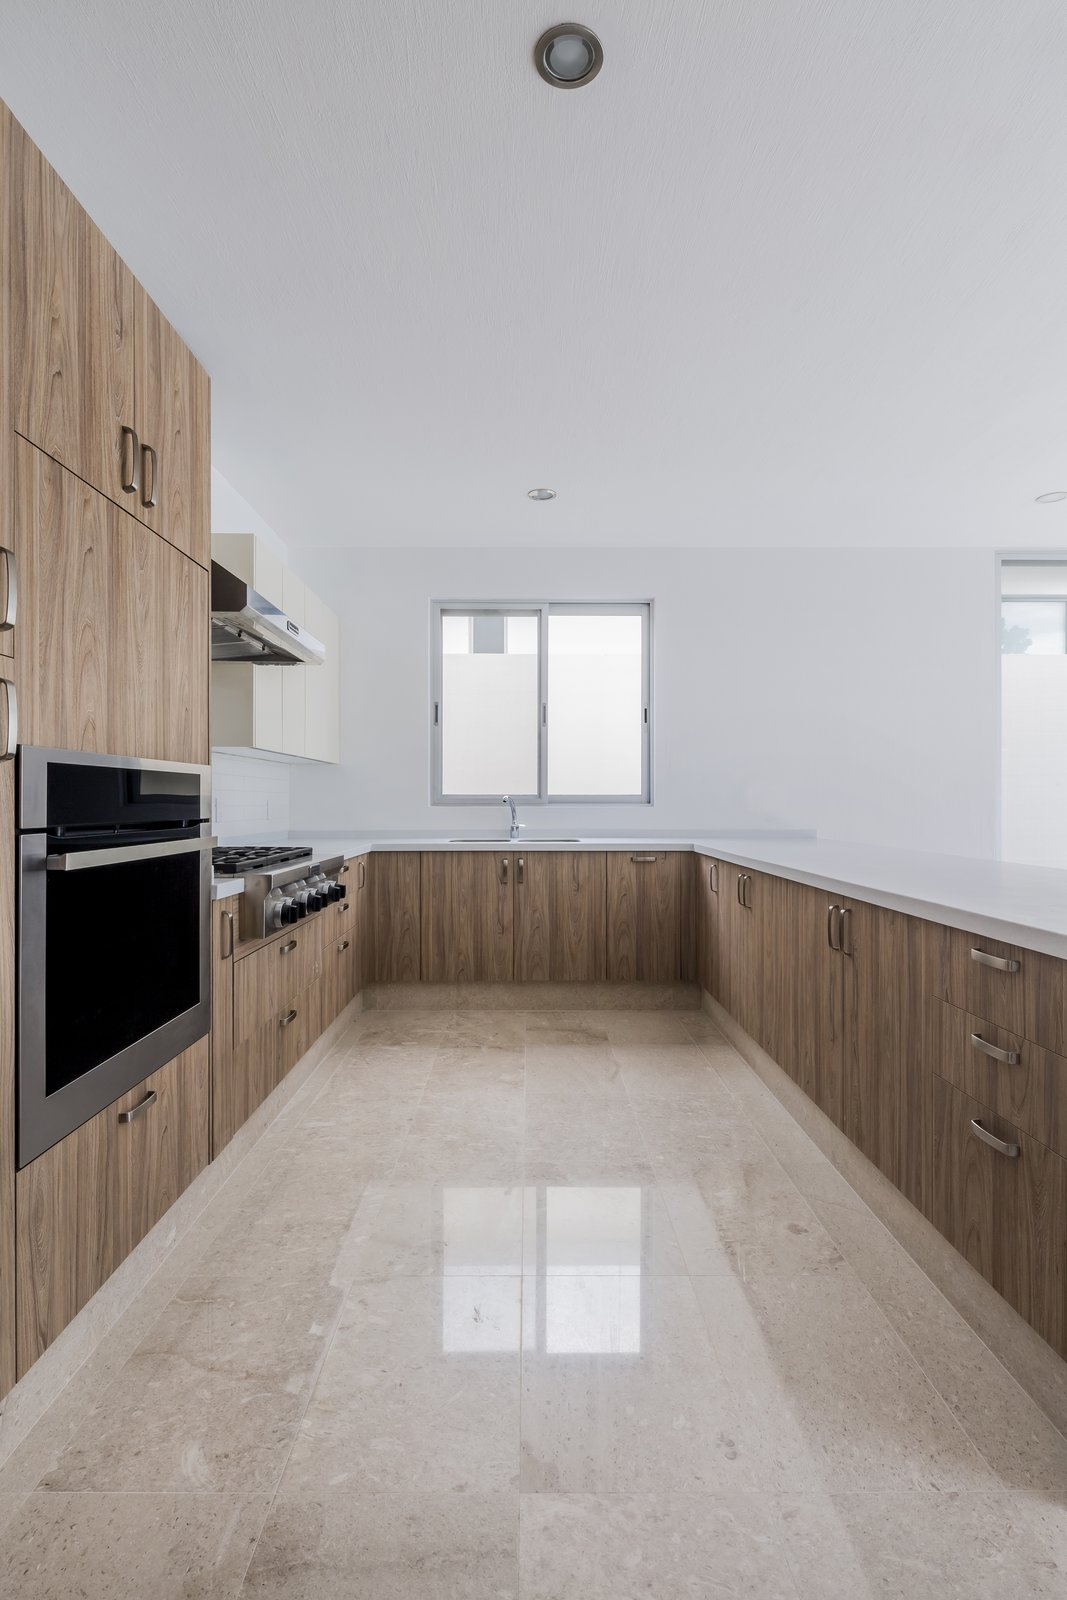 Tagged: Kitchen, Wood Cabinet, Wood Counter, Marble Floor, Quartzite Counter, Ceramic Tile Backsplashe, Ceiling Lighting, and Wall Oven. CASA VALLE by Sergio Villalobos